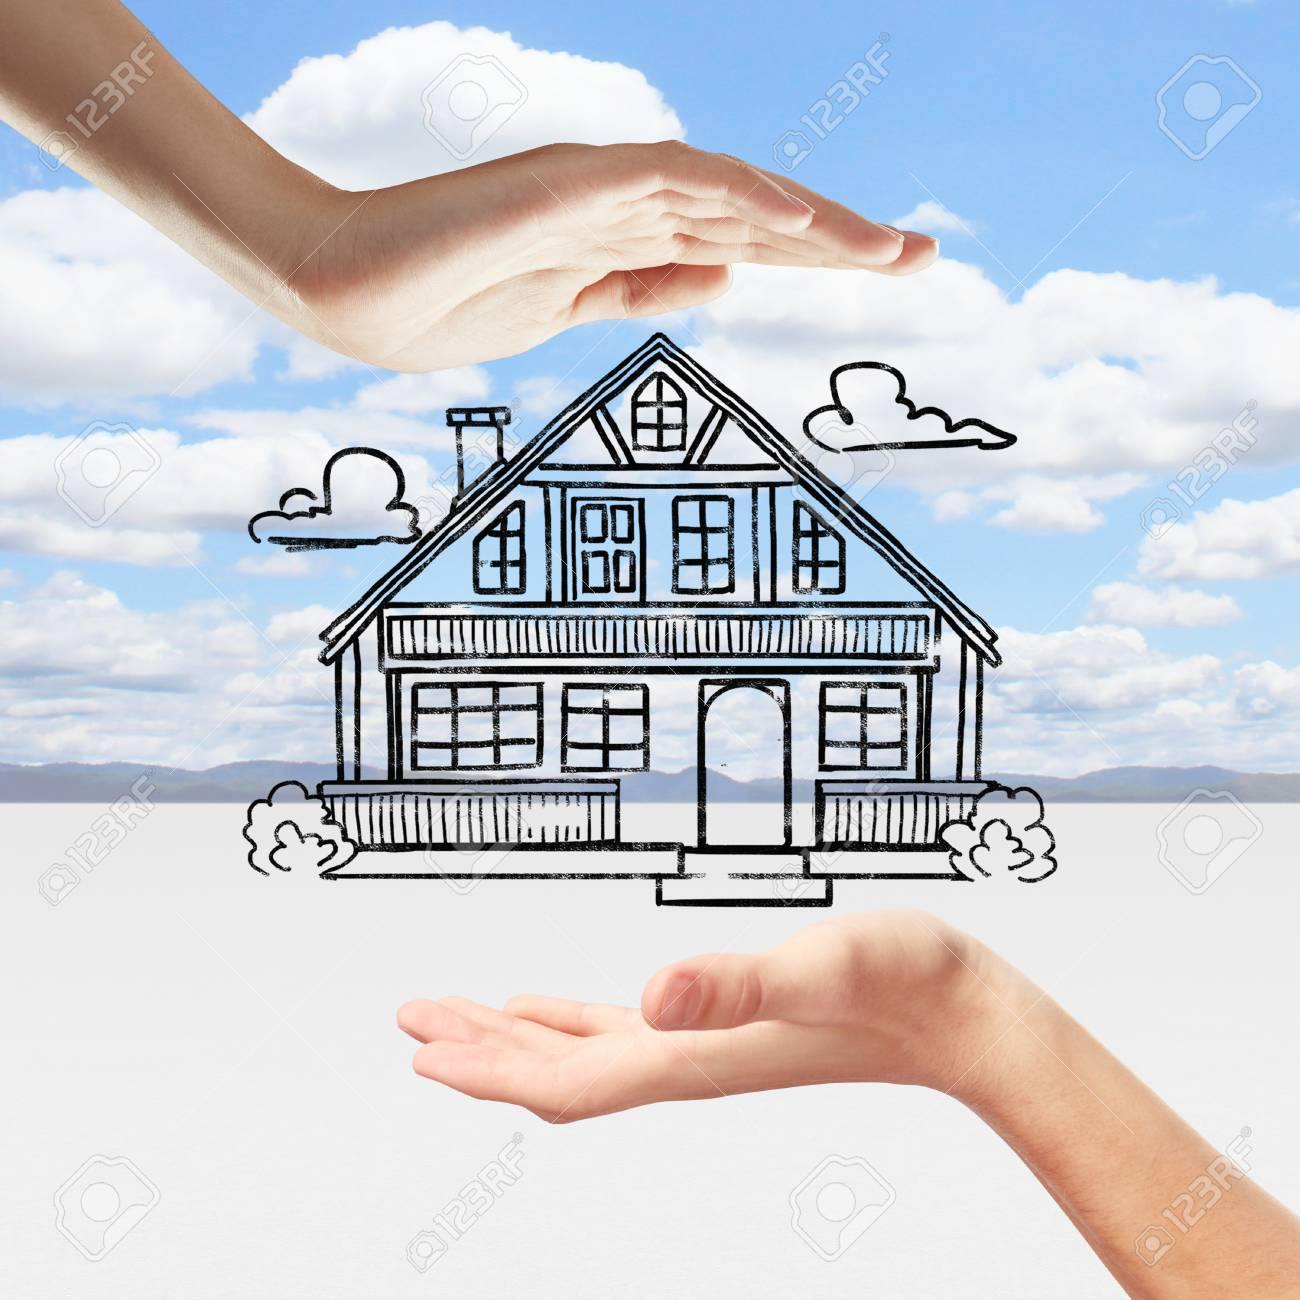 Hands Holding Creative House Sketch On Beautiful Landscape Background Stock Photo Picture And Royalty Free Image Image 63391676